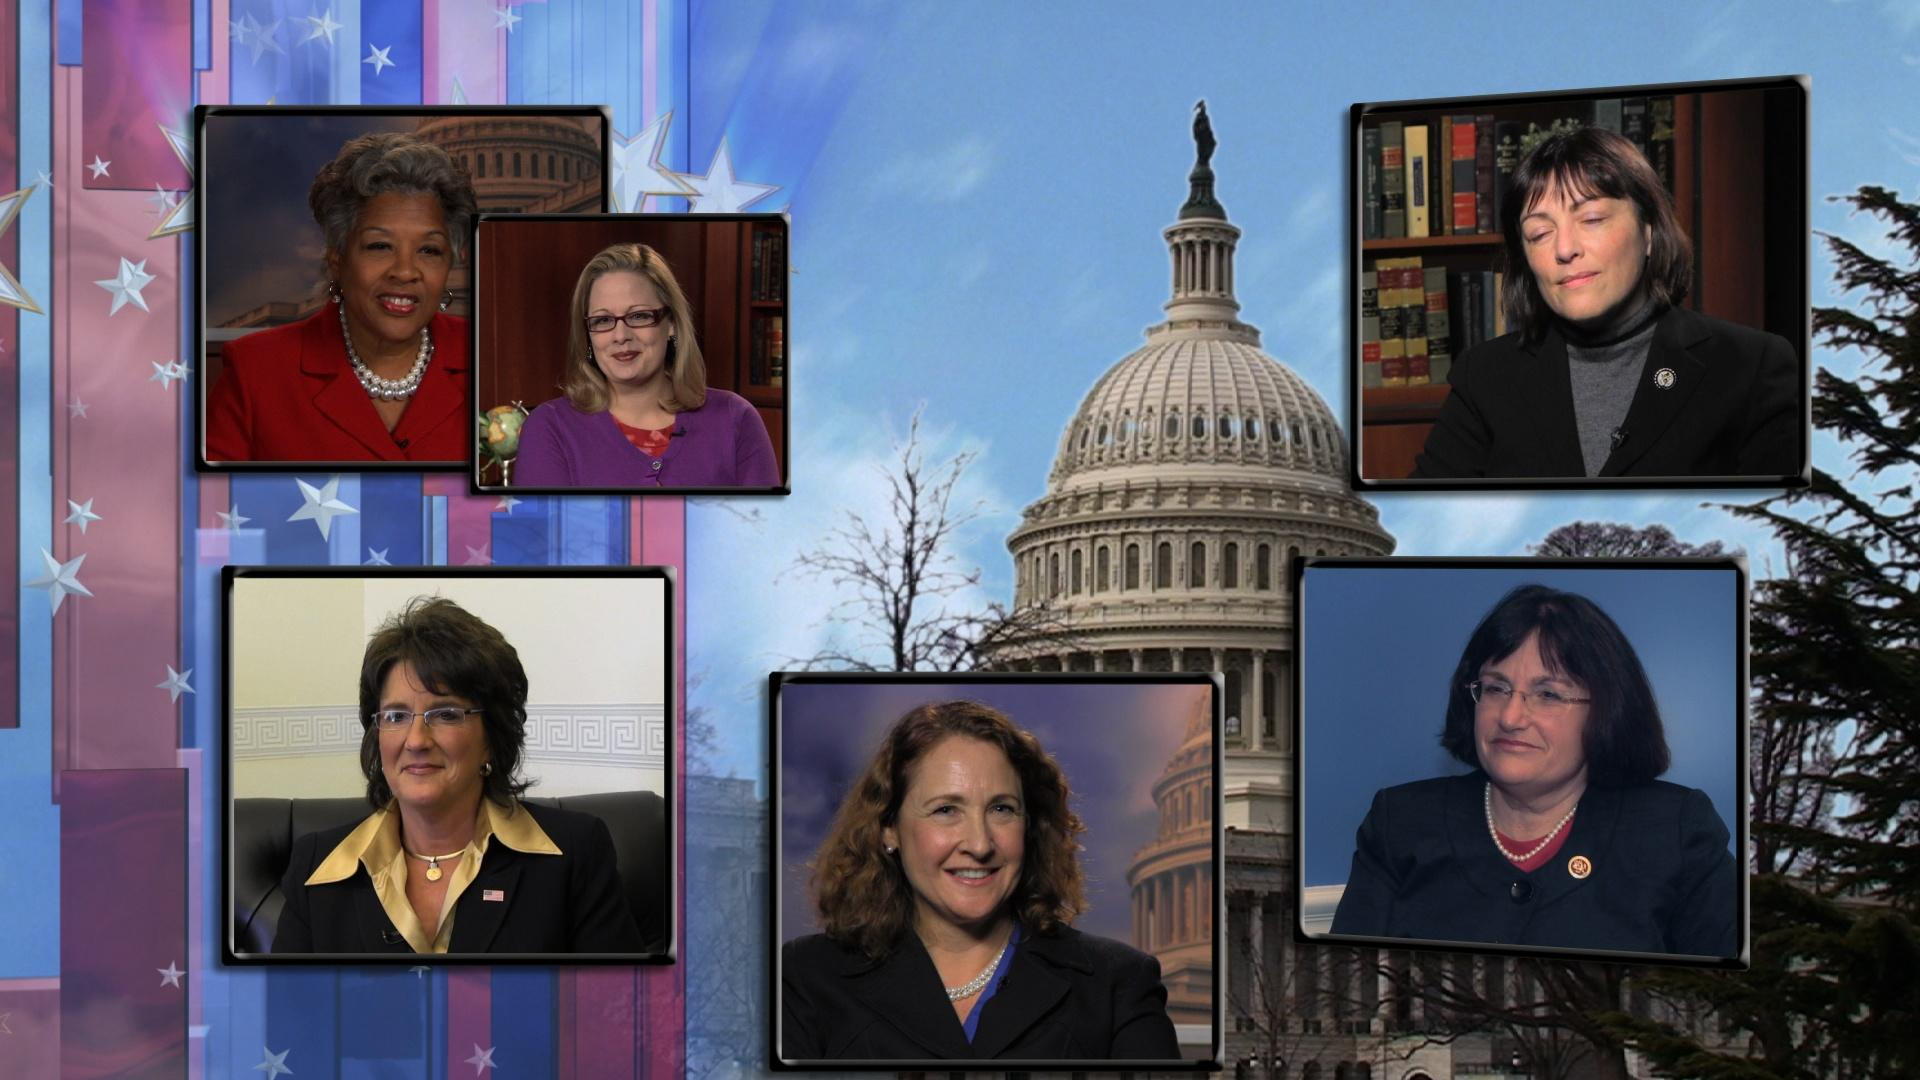 Introducing More New Powerful Women in Congress